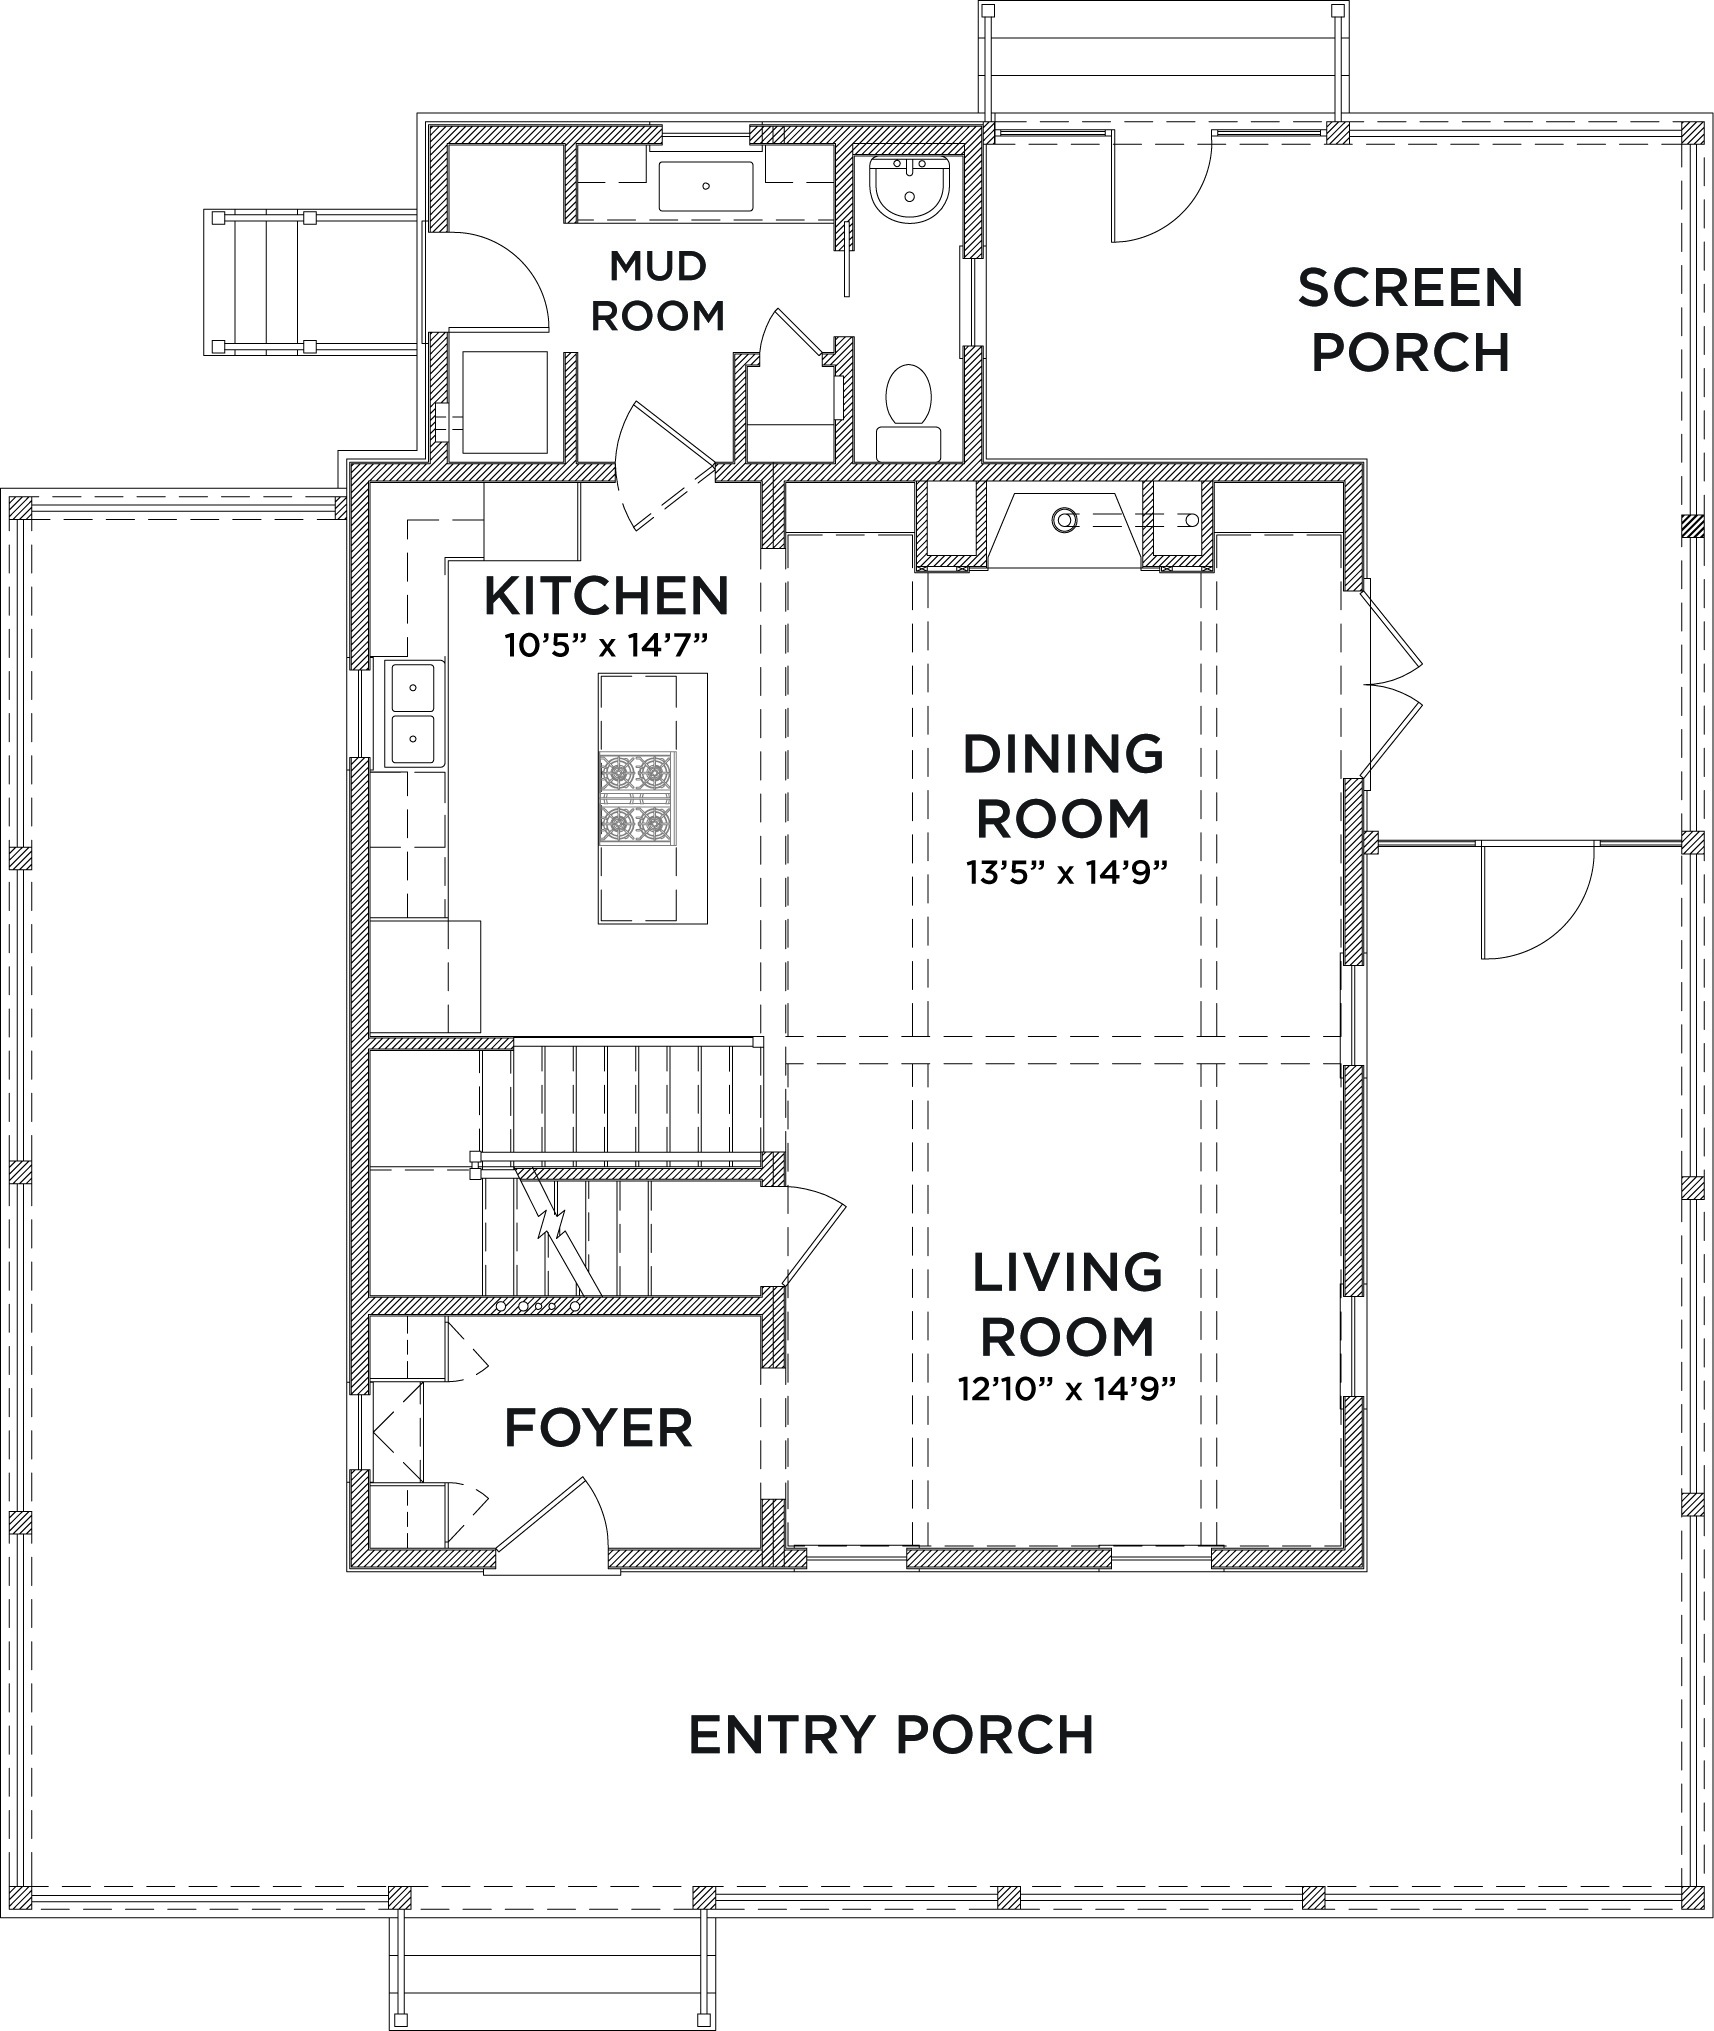 Marvelous how to draw a house plan step by step 4 for How to draw a house plan step by step